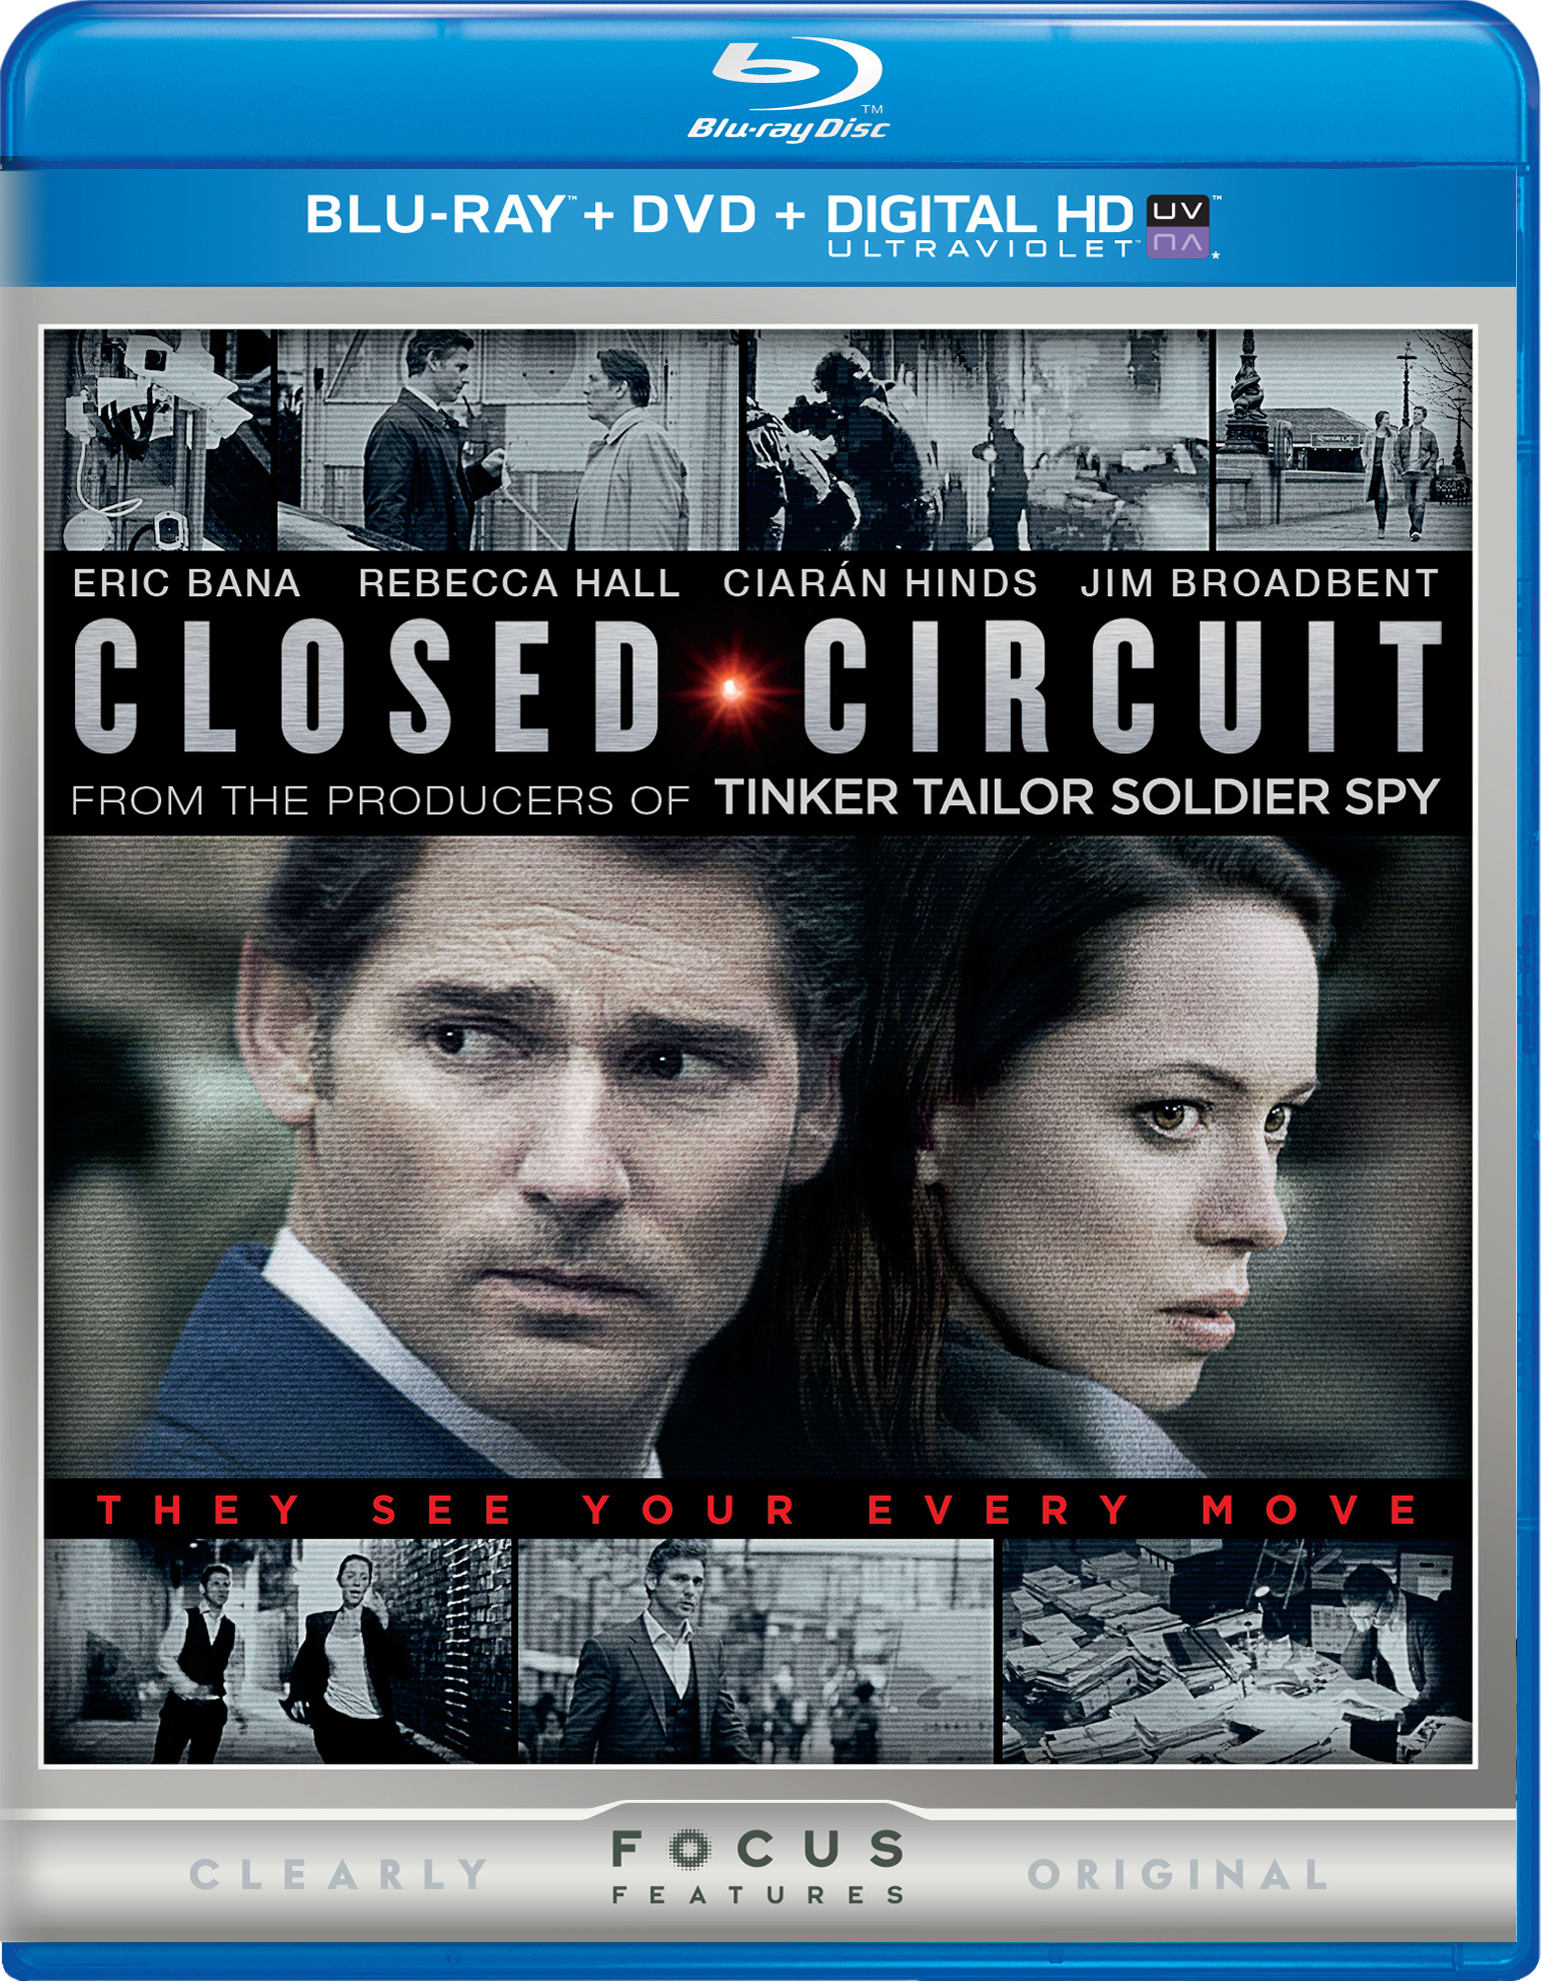 Closed Circuit (DVD + Digital) [Blu-ray]